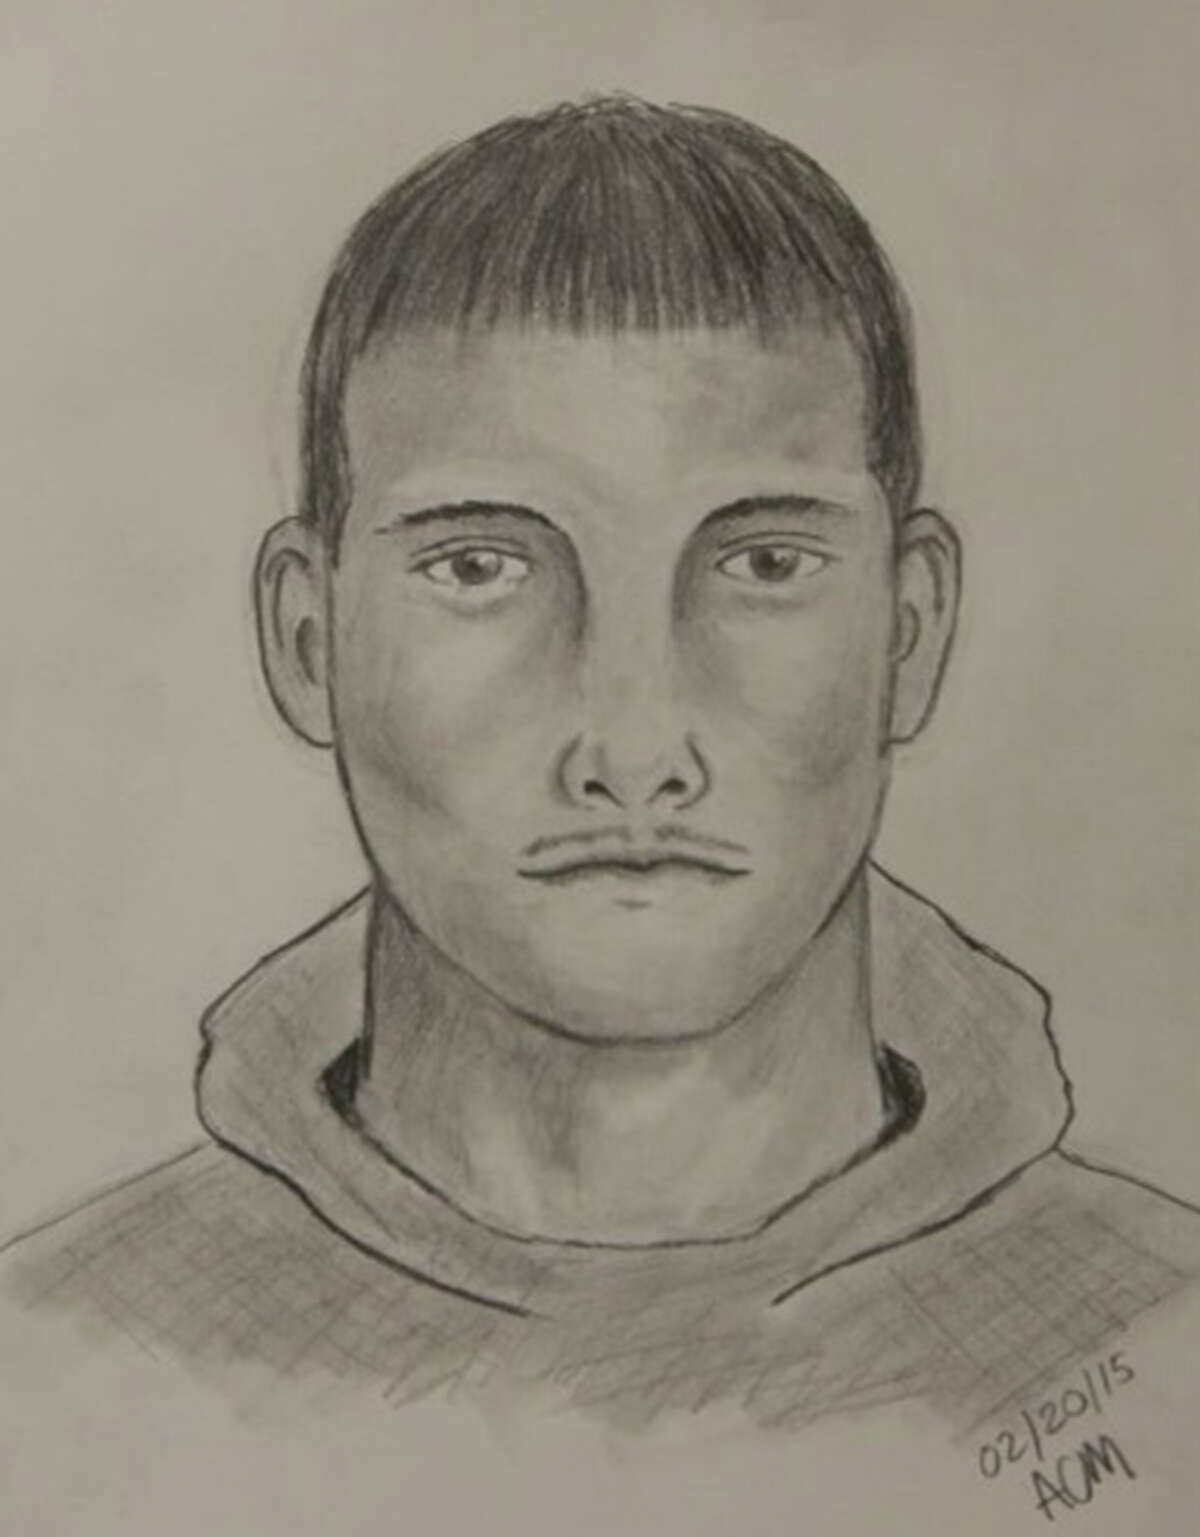 A police sketch of a man accused of sexually assaulting a female Thursday morning, Feb. 19, at Bamberger Nature Park.